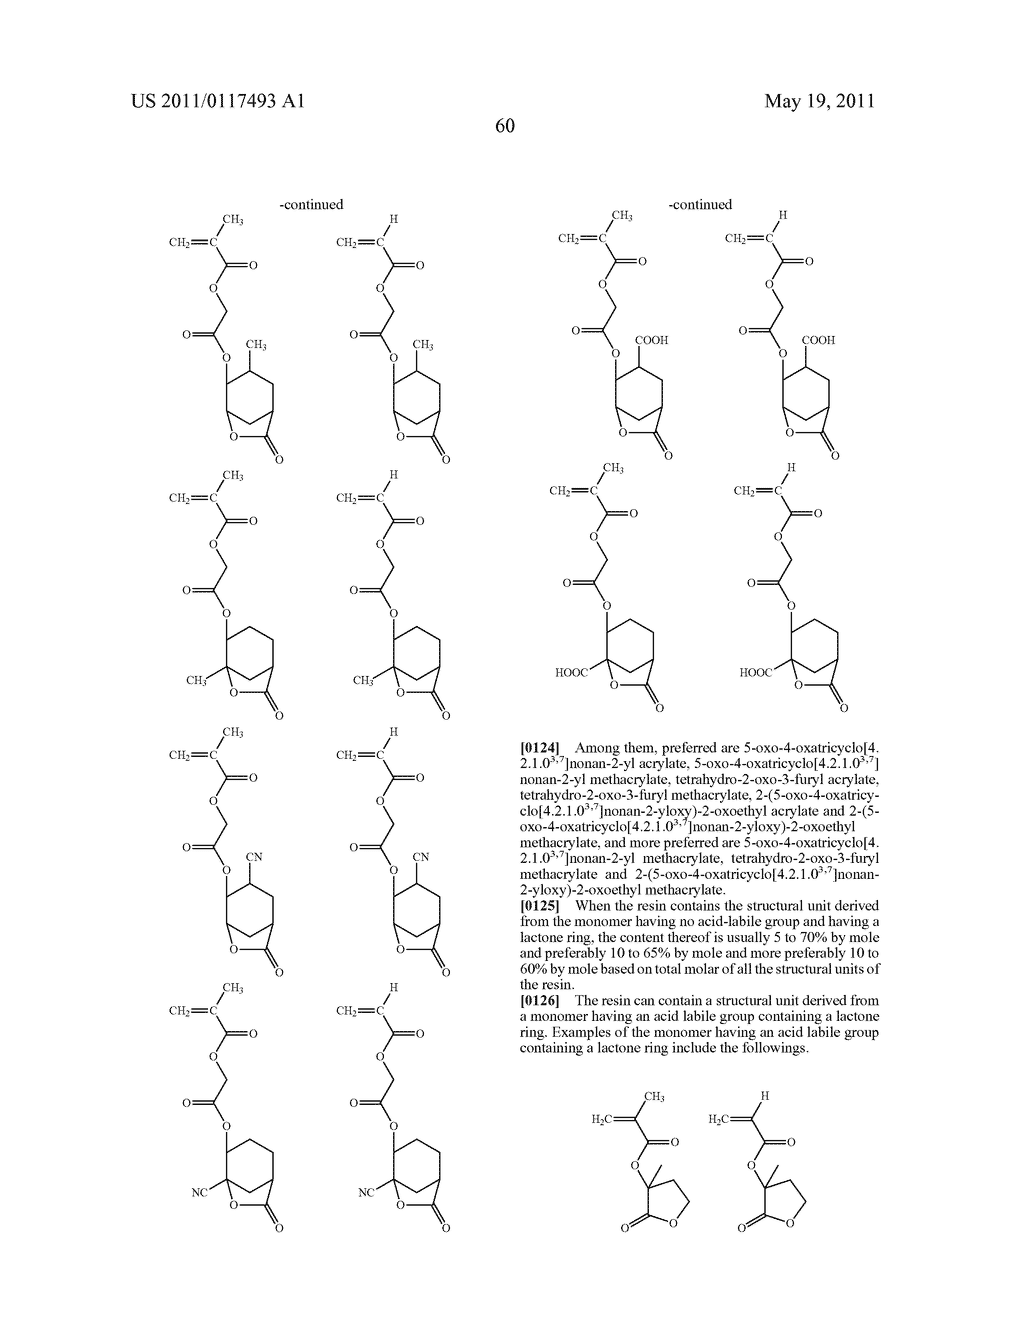 SALT AND PHOTORESIST COMPOSITION CONTAINING THE SAME - diagram, schematic, and image 61